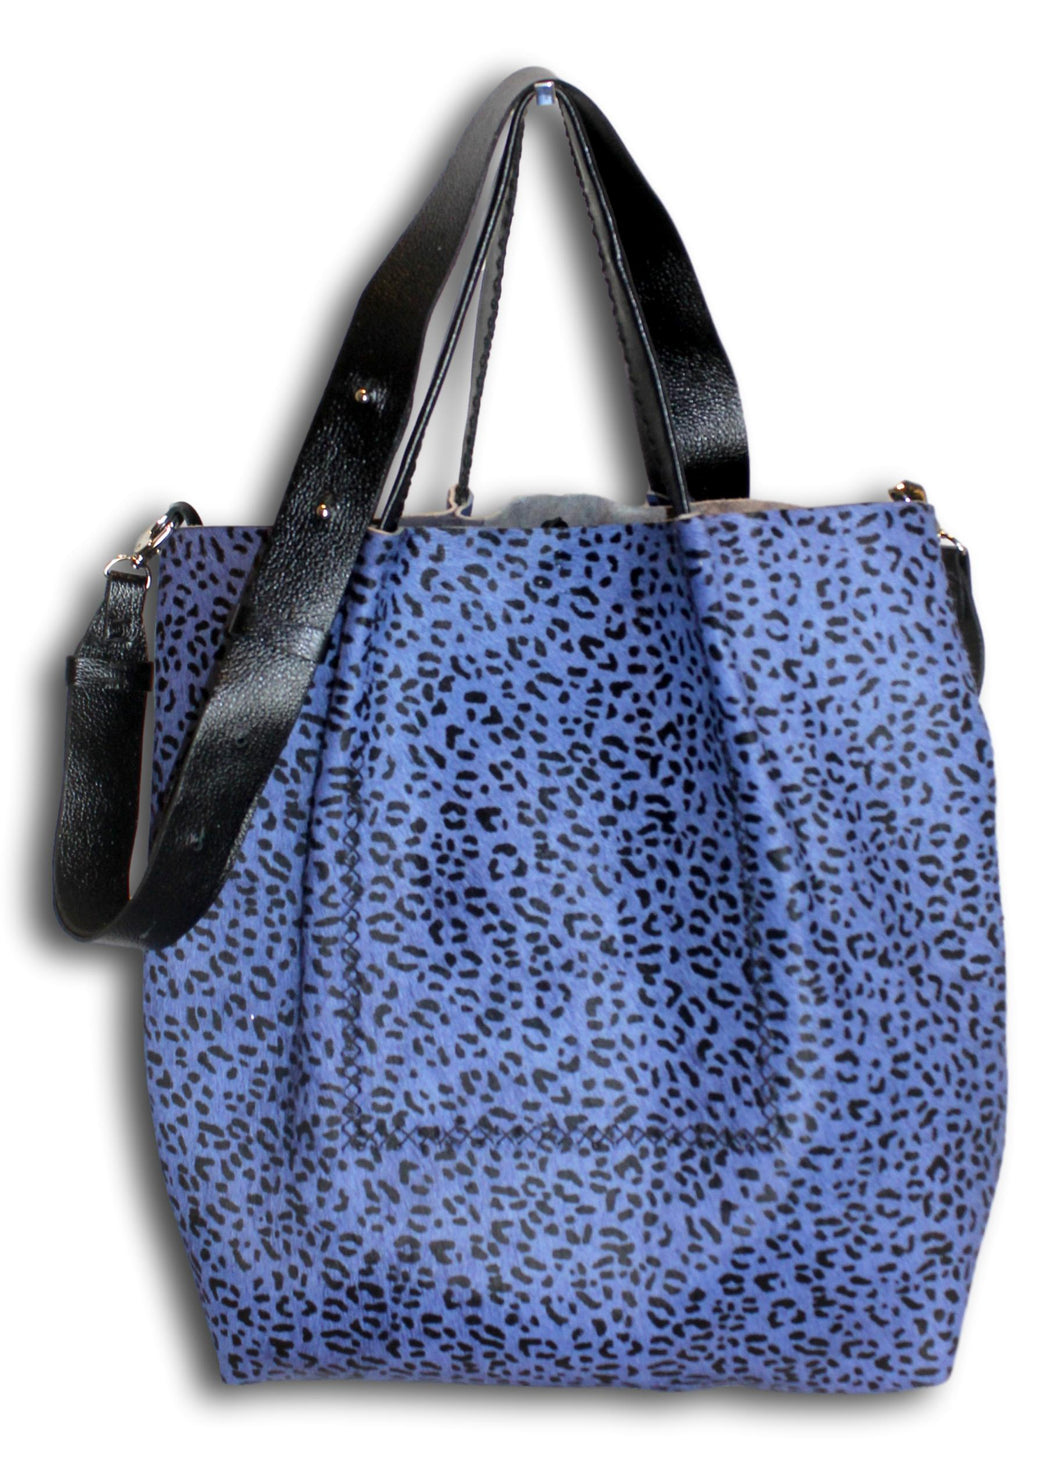 la jolla | black and blue printed calfskin